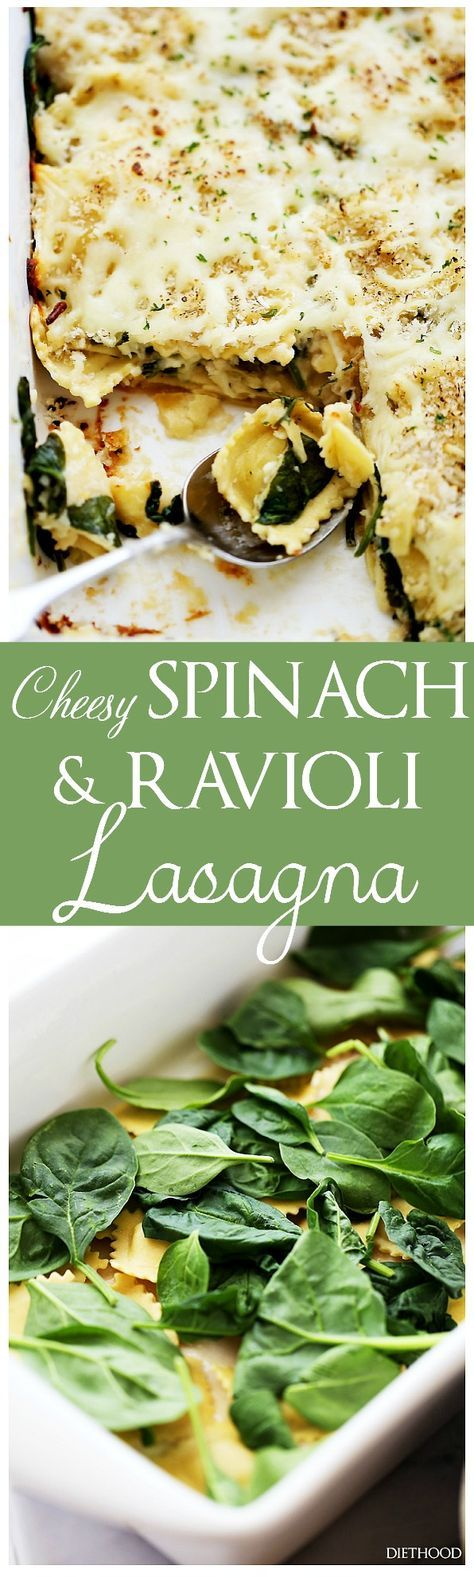 Spinach and Four Cheese Ravioli Lasagna | www.diethood.com | Layers of cheese-filled ravioli and fresh baby spinach covered in homemade alfredo sauce and topped with a crispy panko crumb-topping. | #lasagna #ravioli